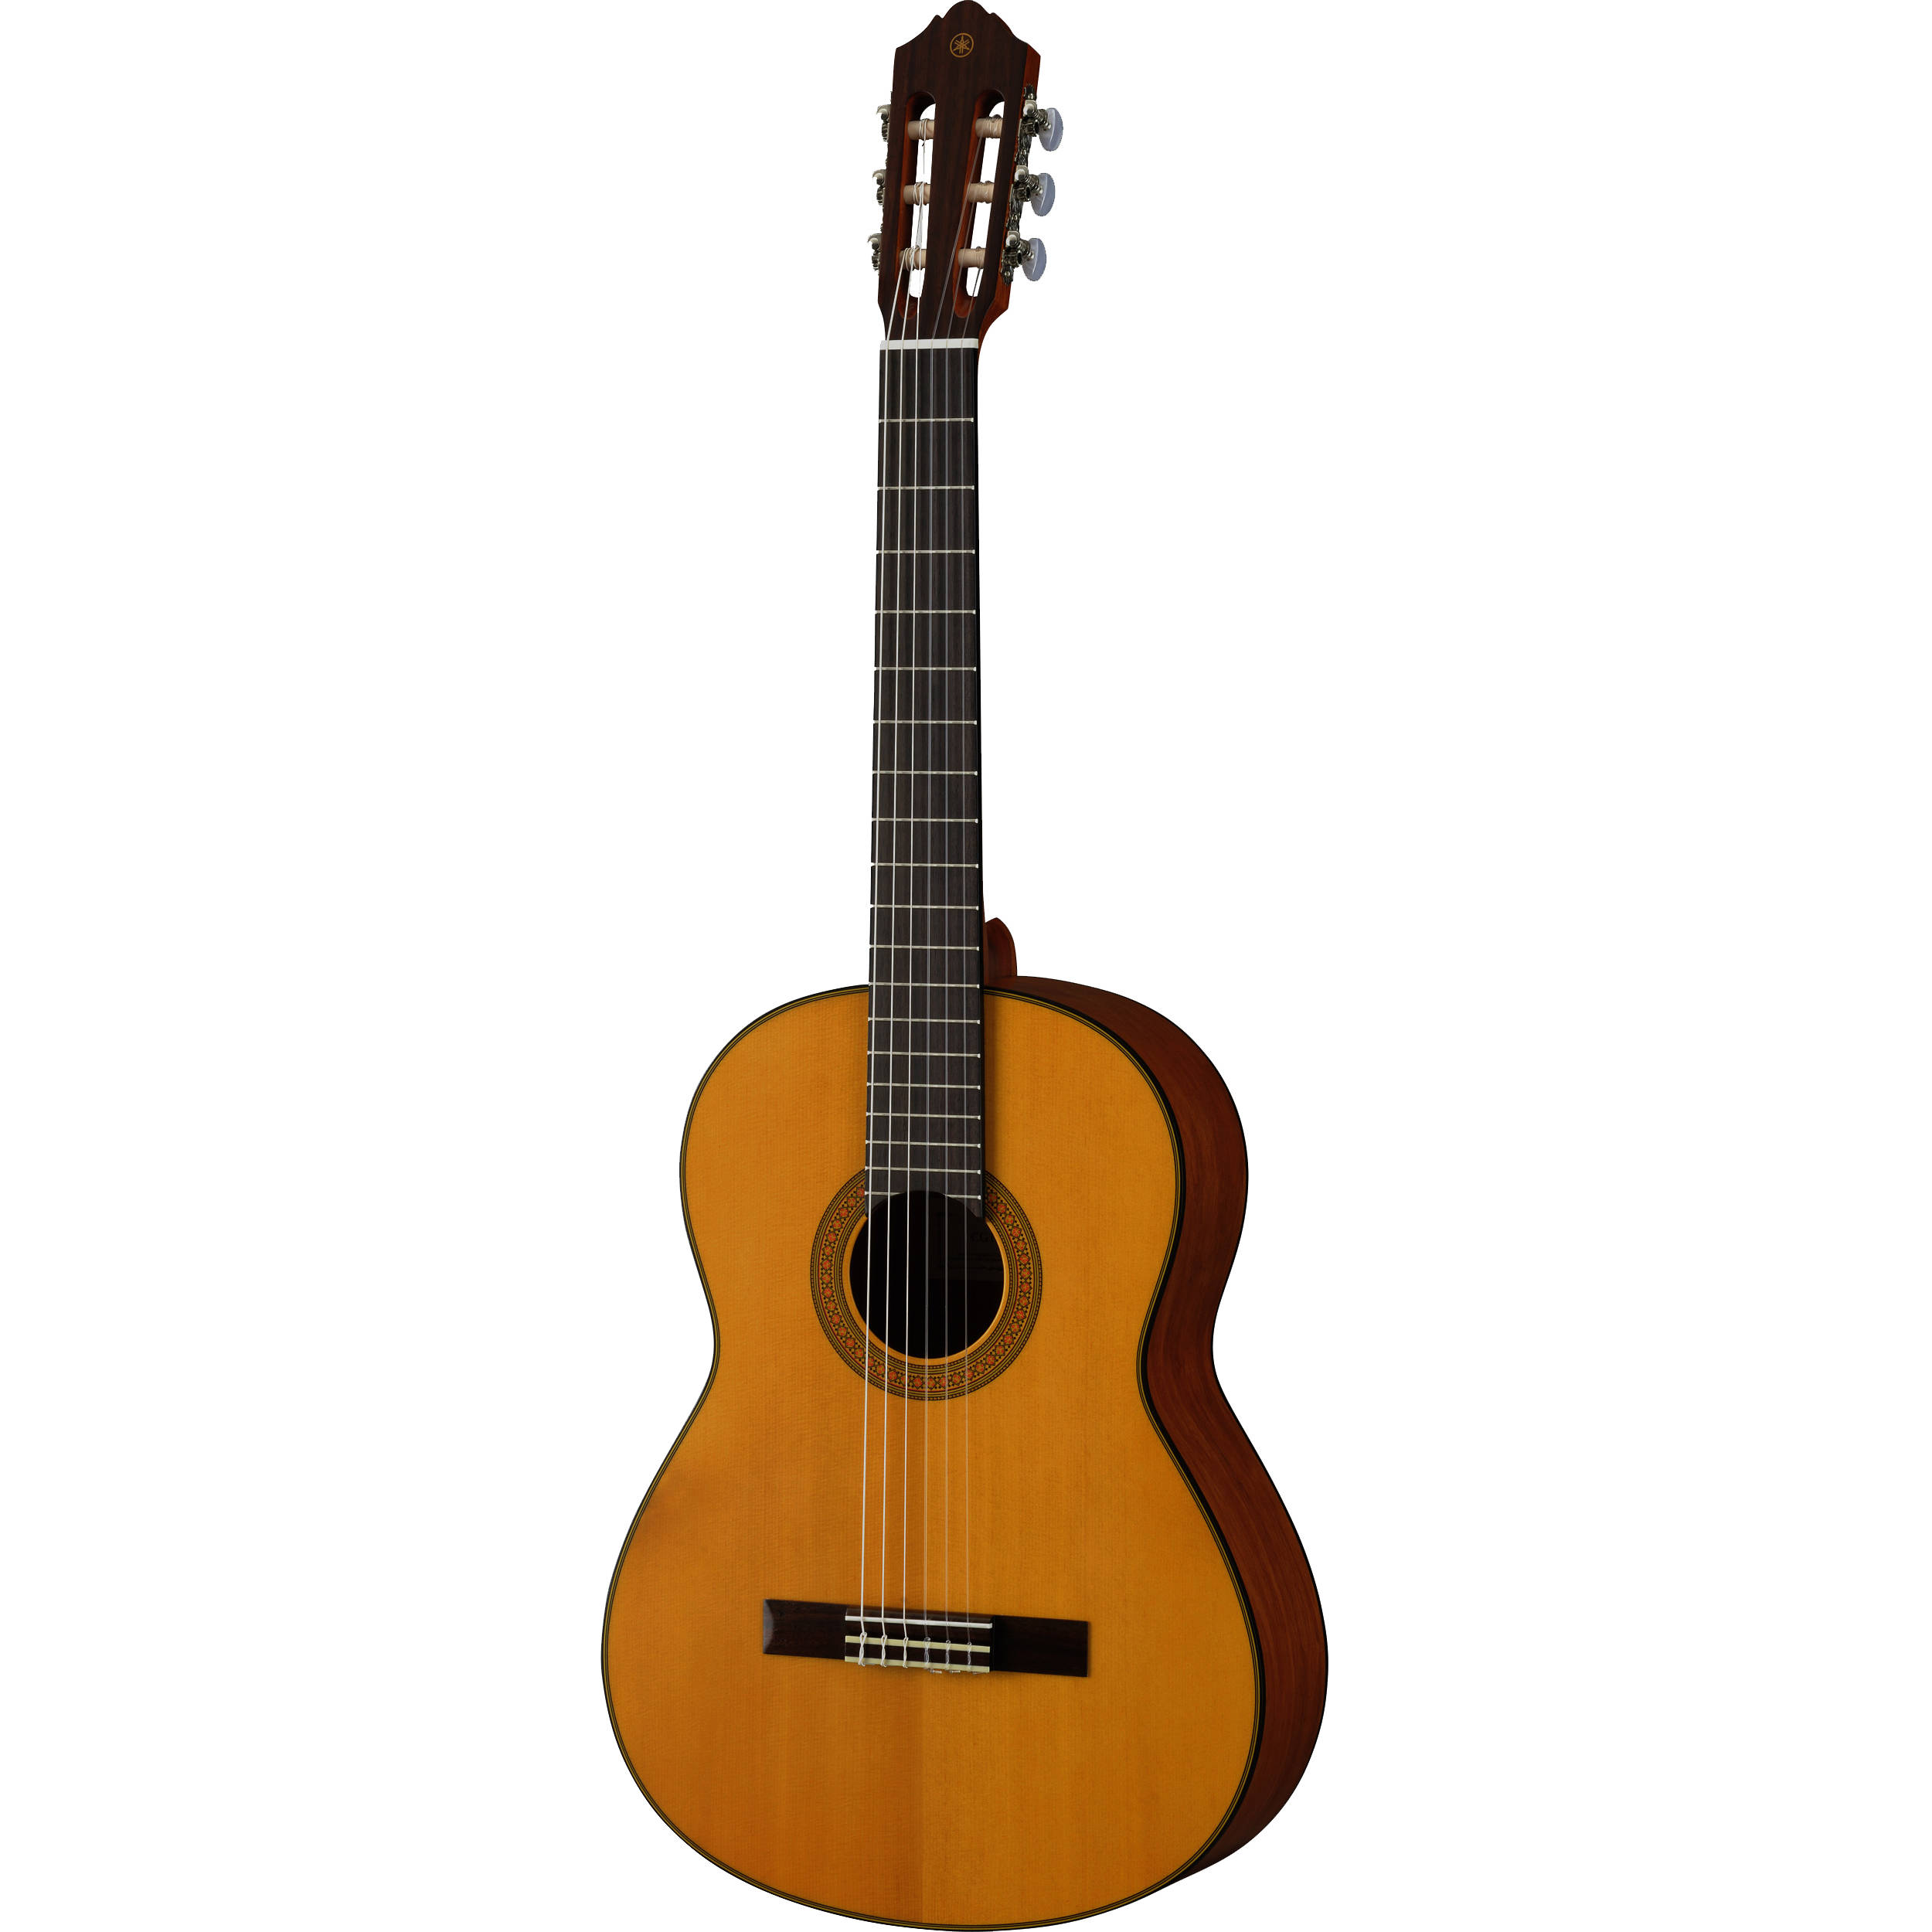 yamaha cg122msh nylon string classical guitar cg122msh b h photo. Black Bedroom Furniture Sets. Home Design Ideas